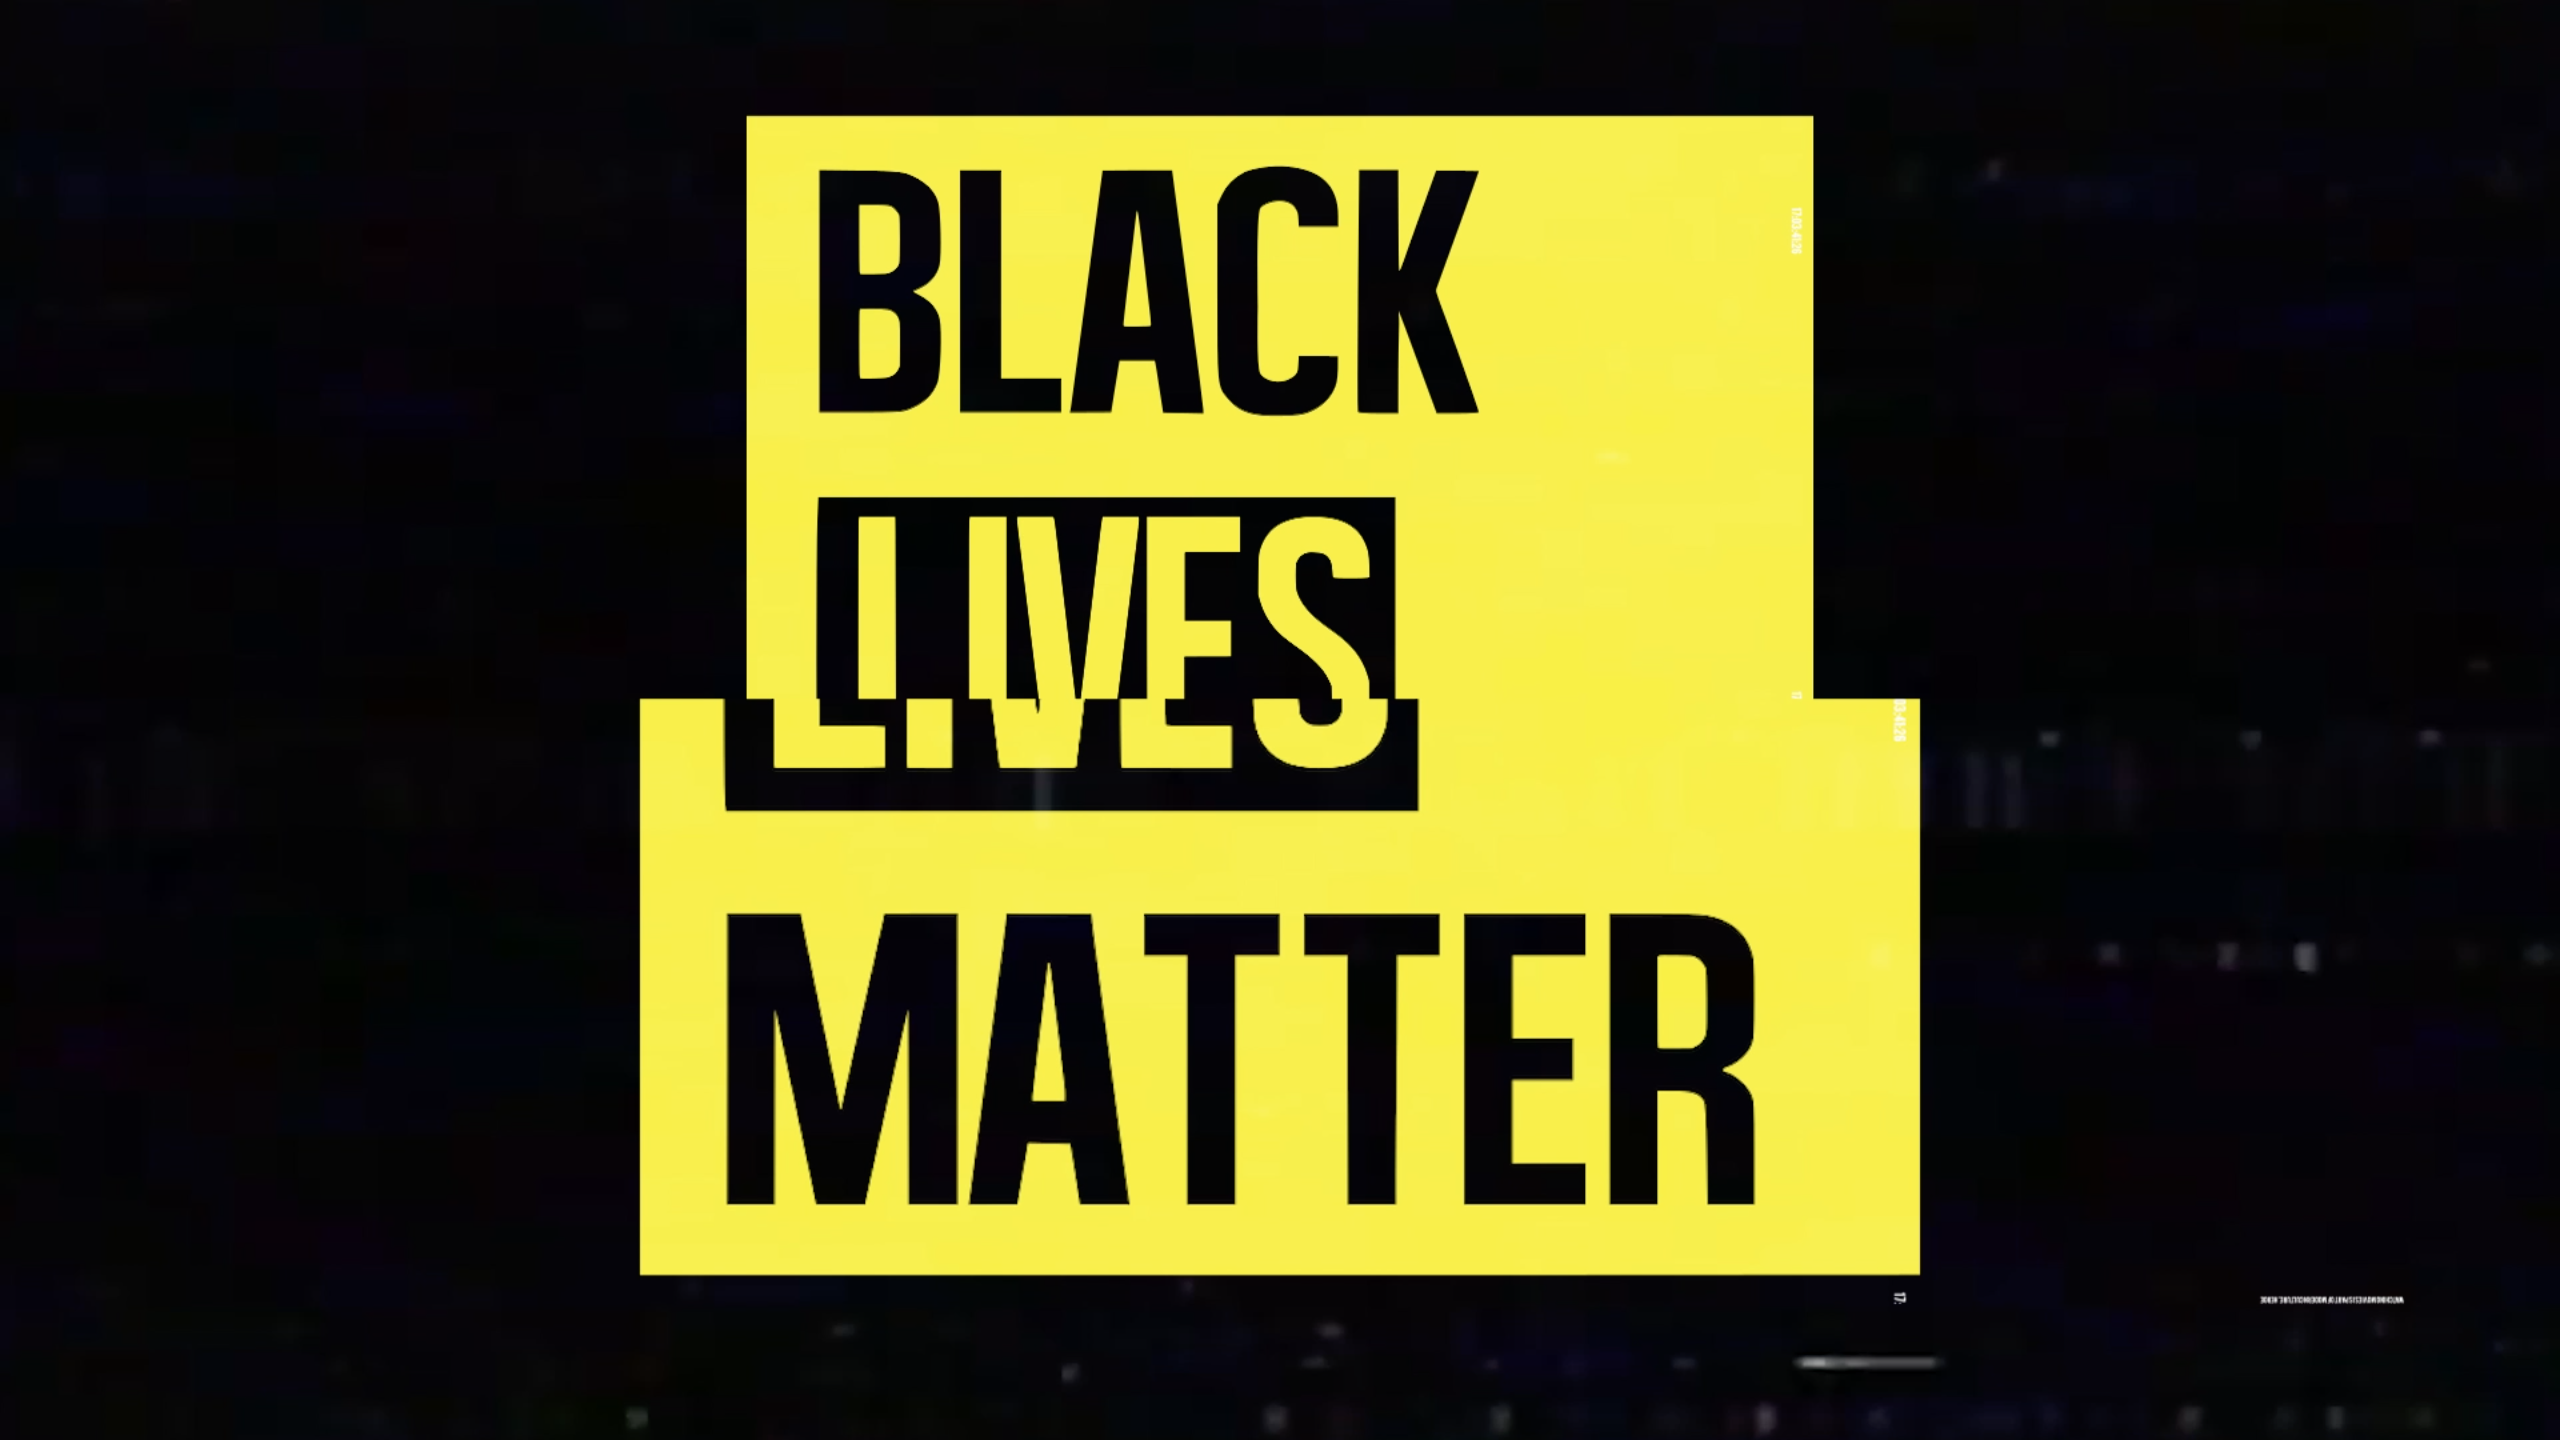 Who is Black Lives Matter